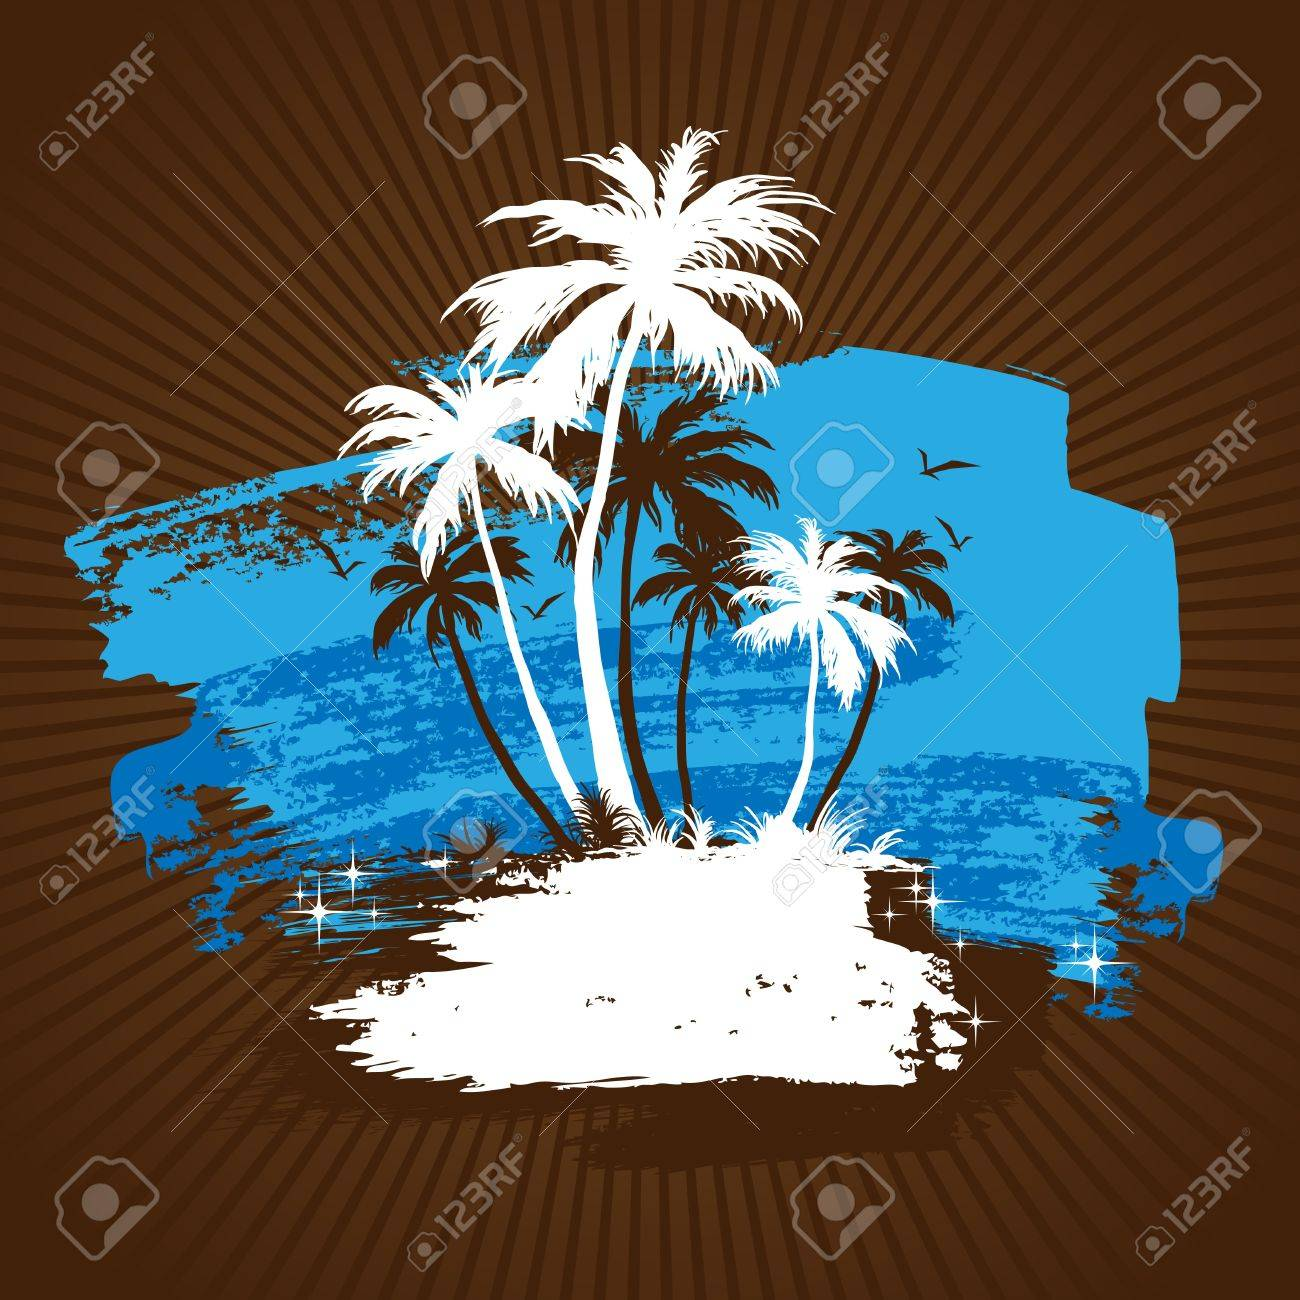 Tropical beach with palm trees - 7085363